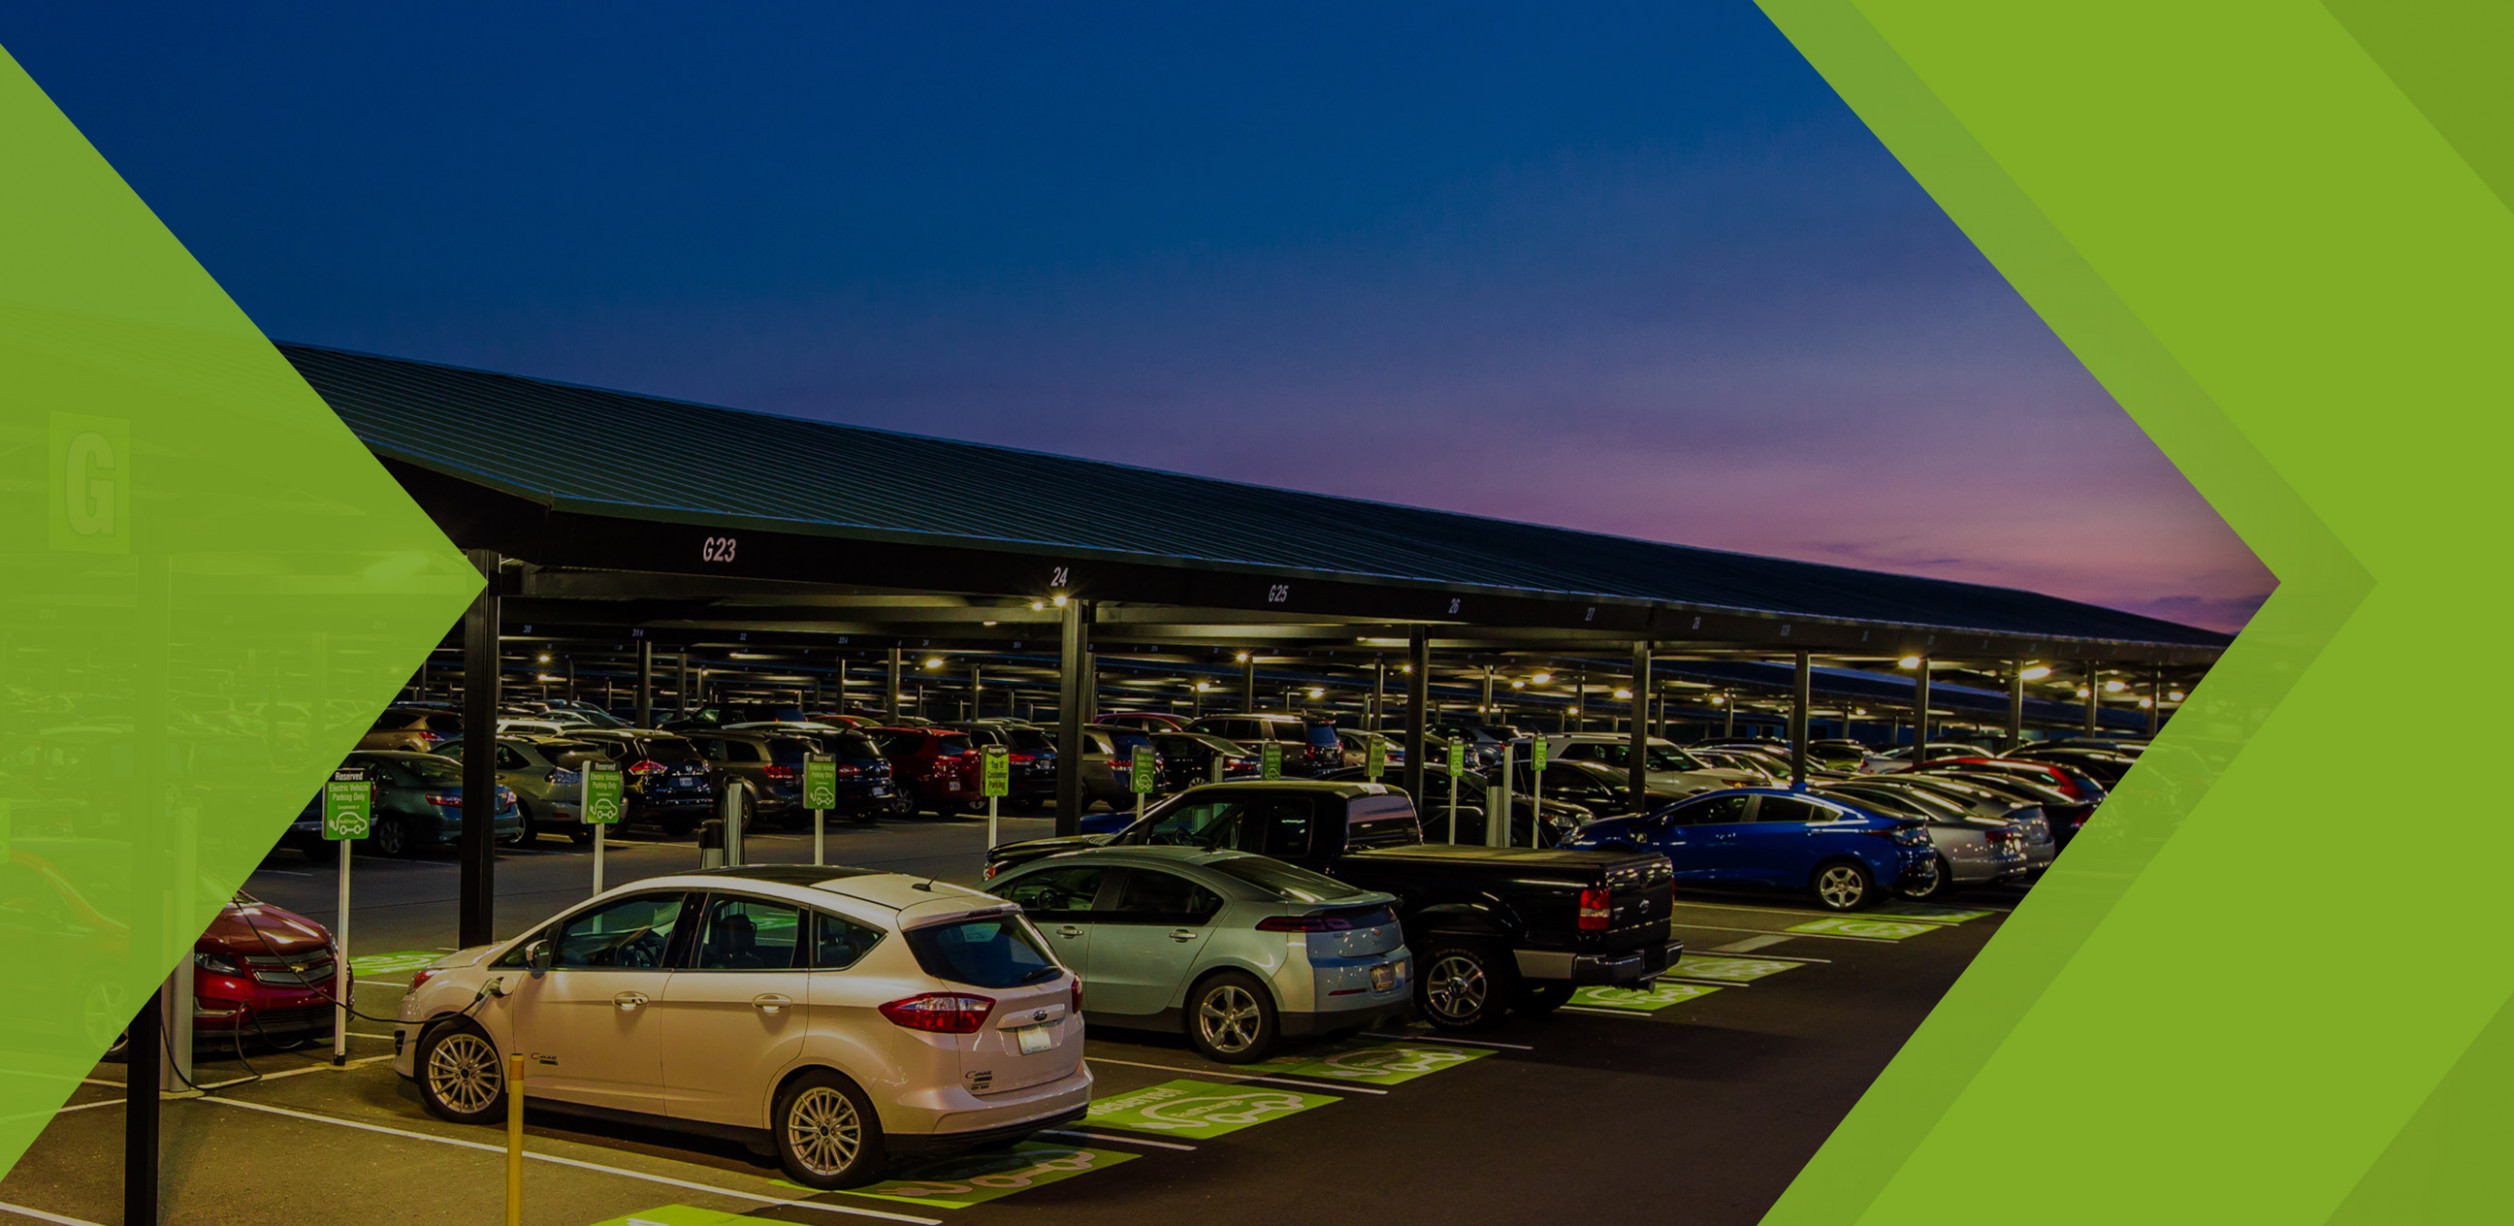 Austin Airport Parking Discount AUS / ABIA Parking Rates Carport Valet Parking